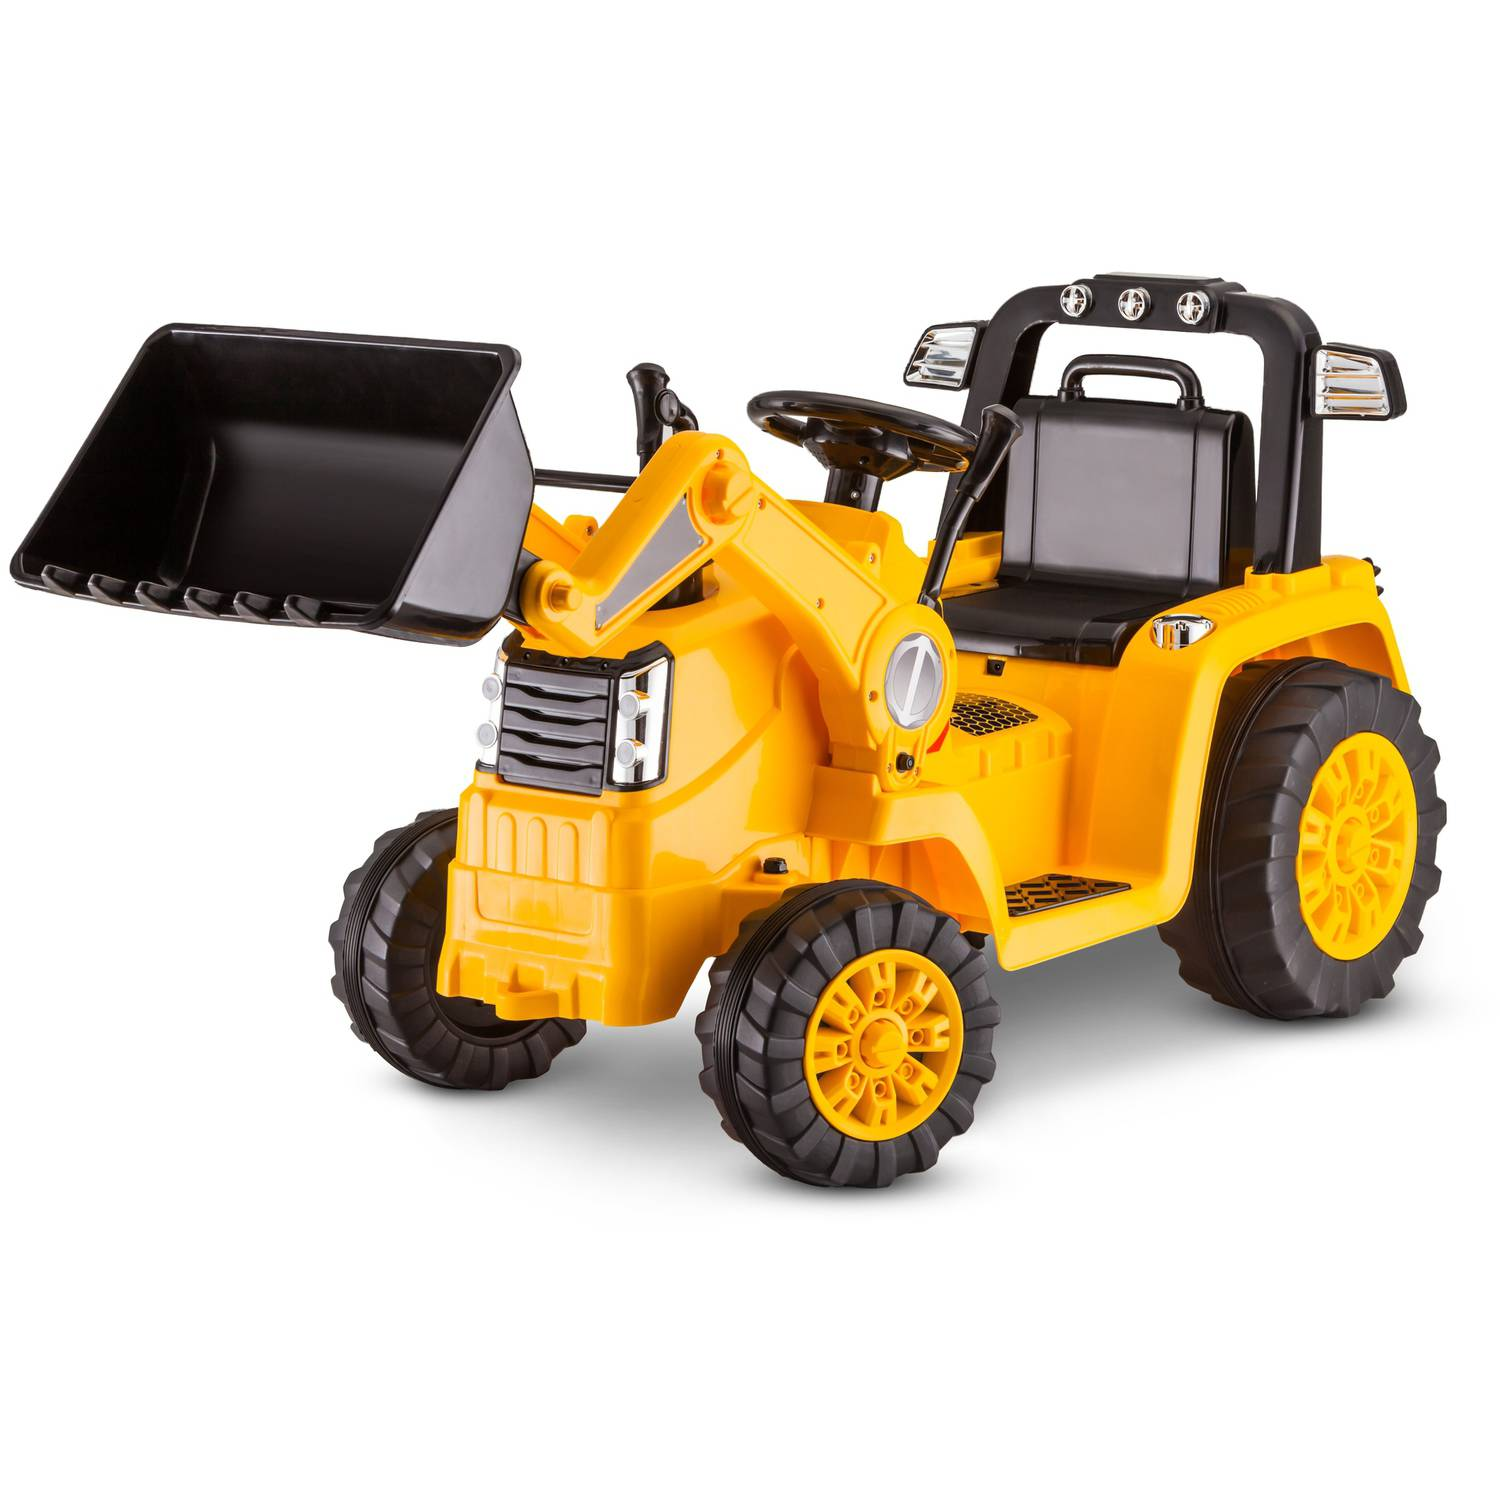 Kidtrax CAT Bulldozer/Tractor 6V Battery Powered Ride-On, Yellow